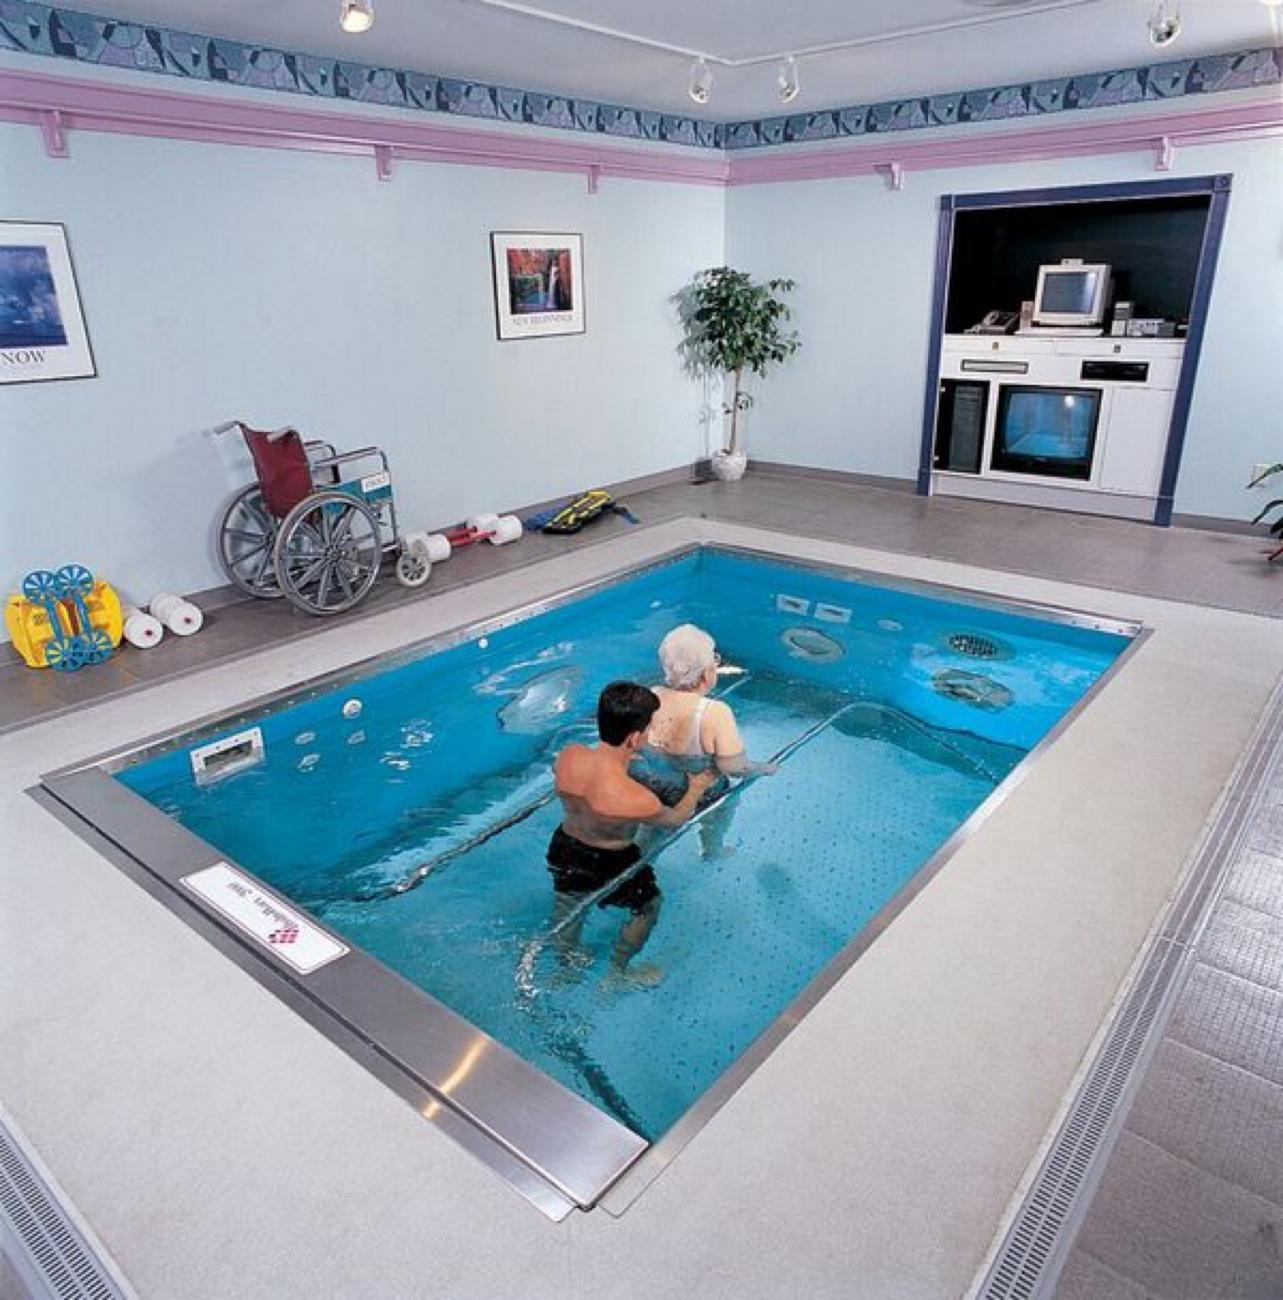 Hydroworx therapy pool.